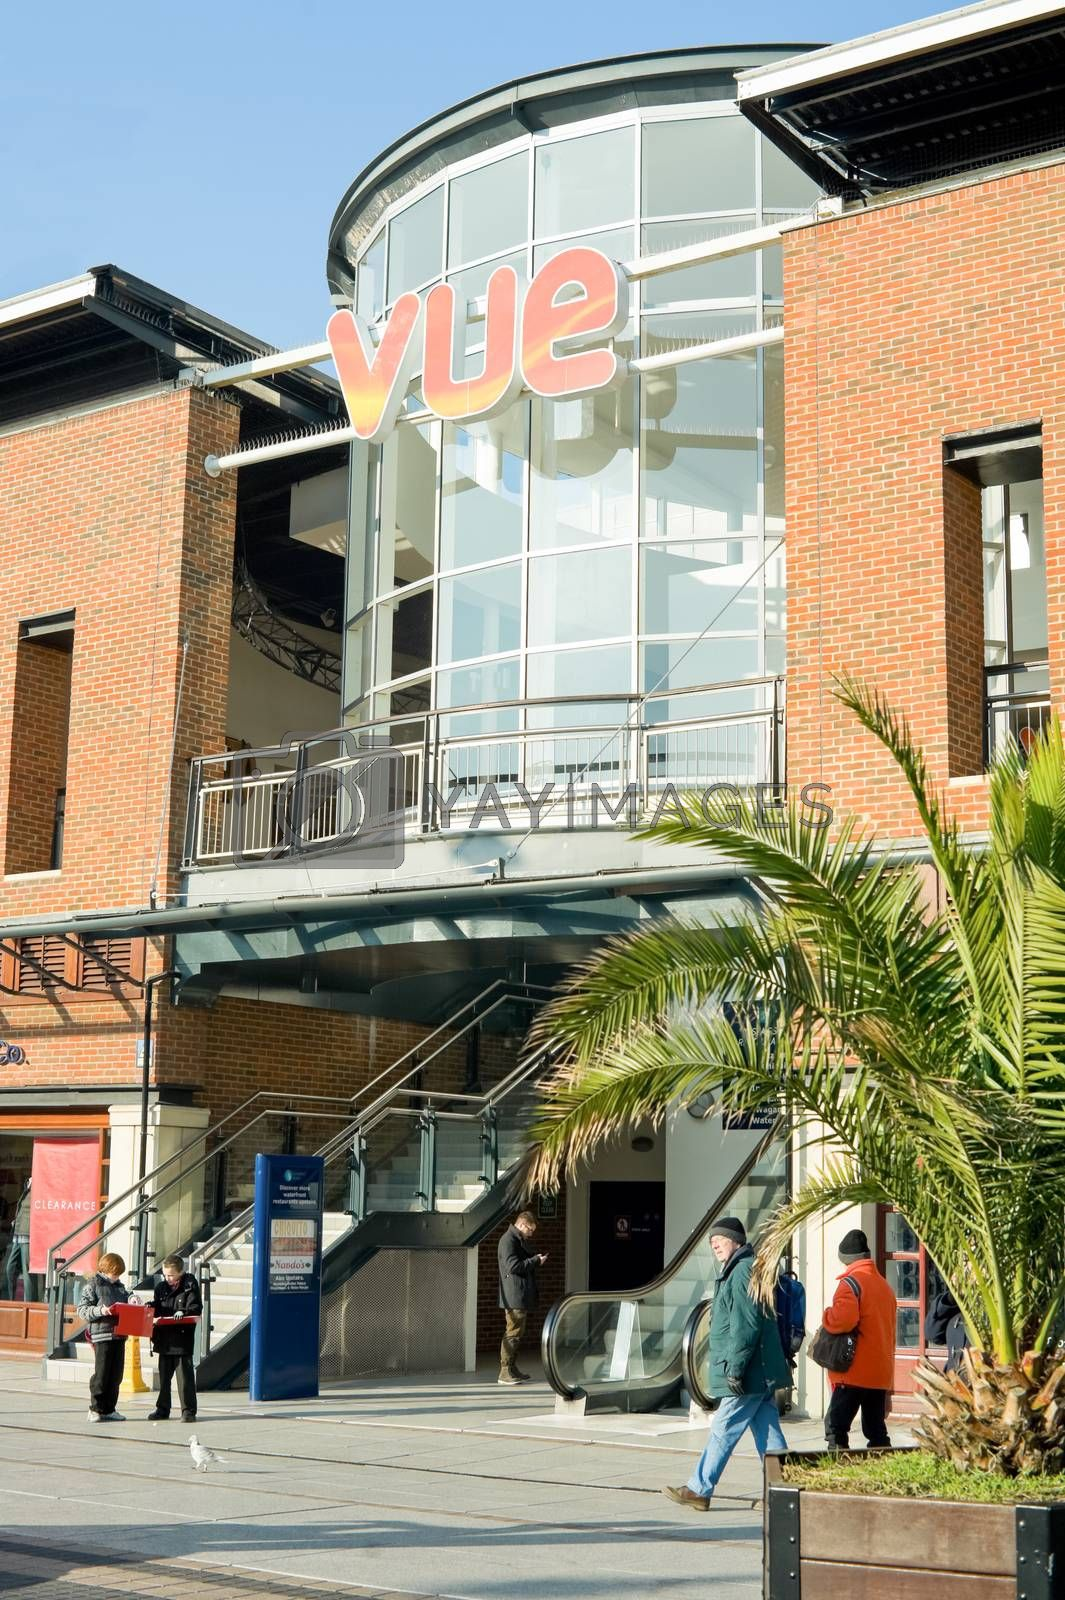 Royalty free image of vue cinema by nelsonart